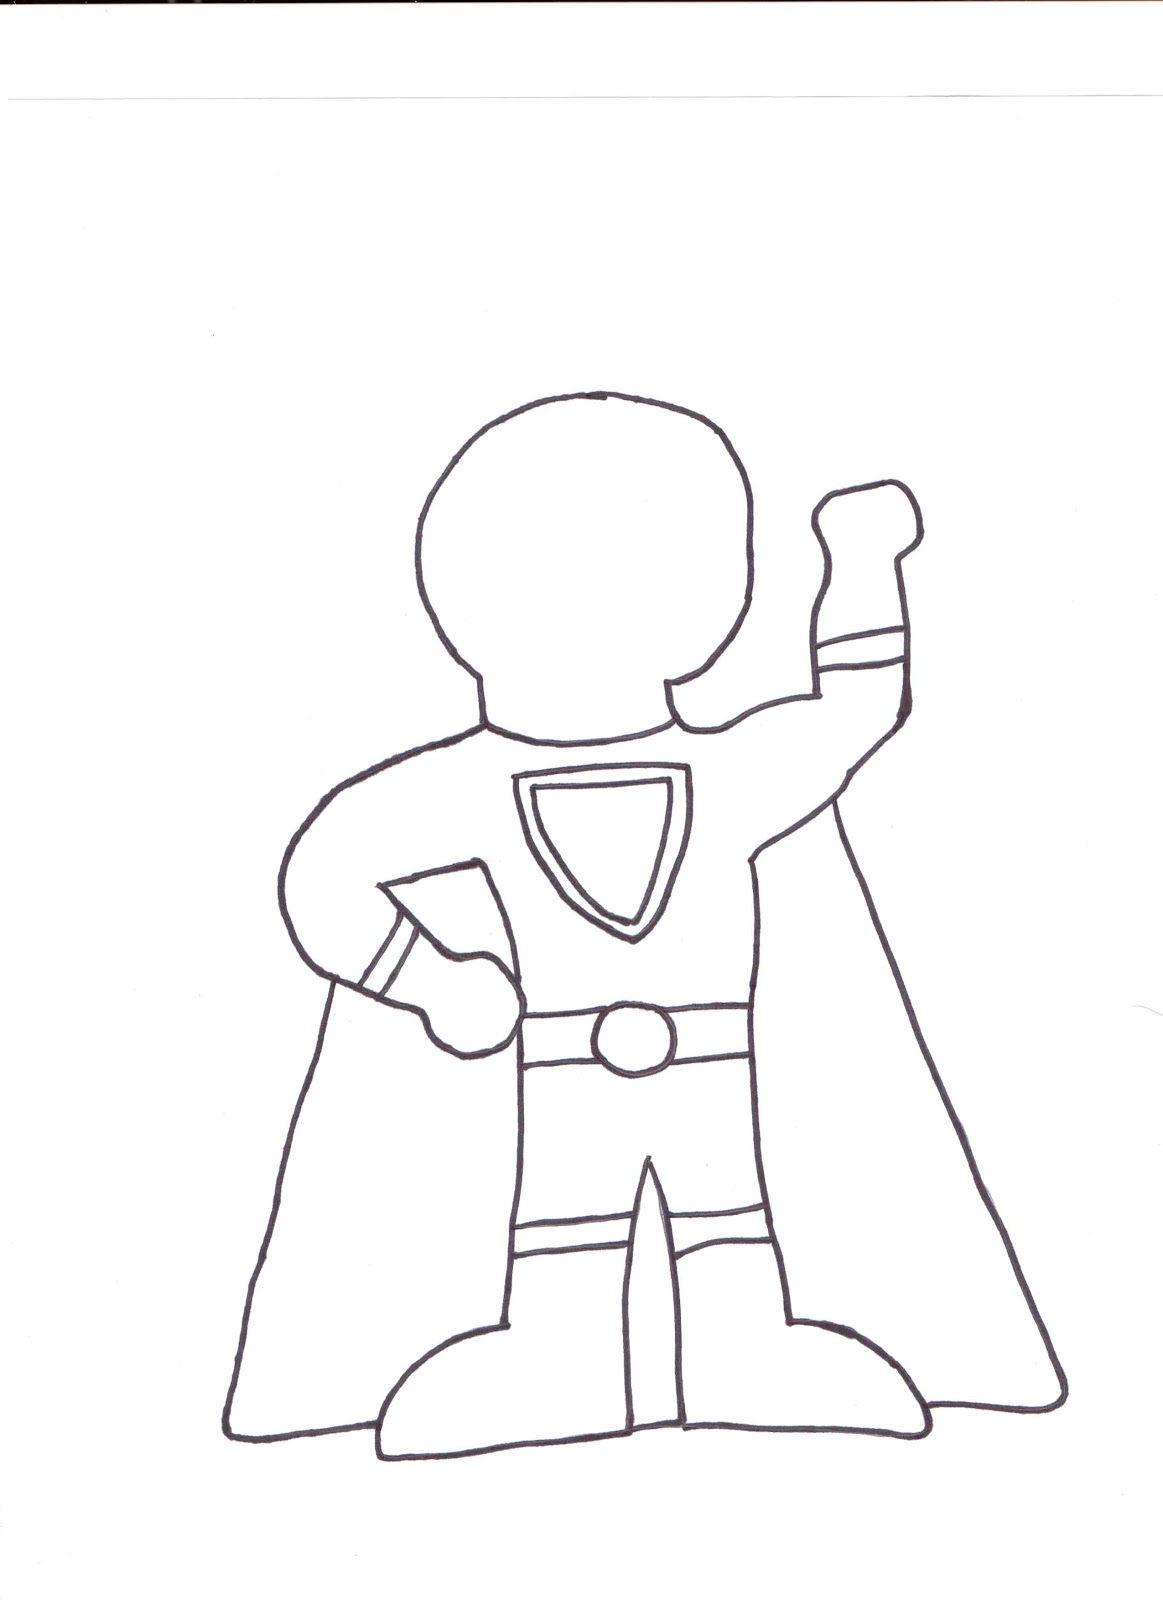 Superhero Cape Drawing At Getdrawings Free For Personal Use